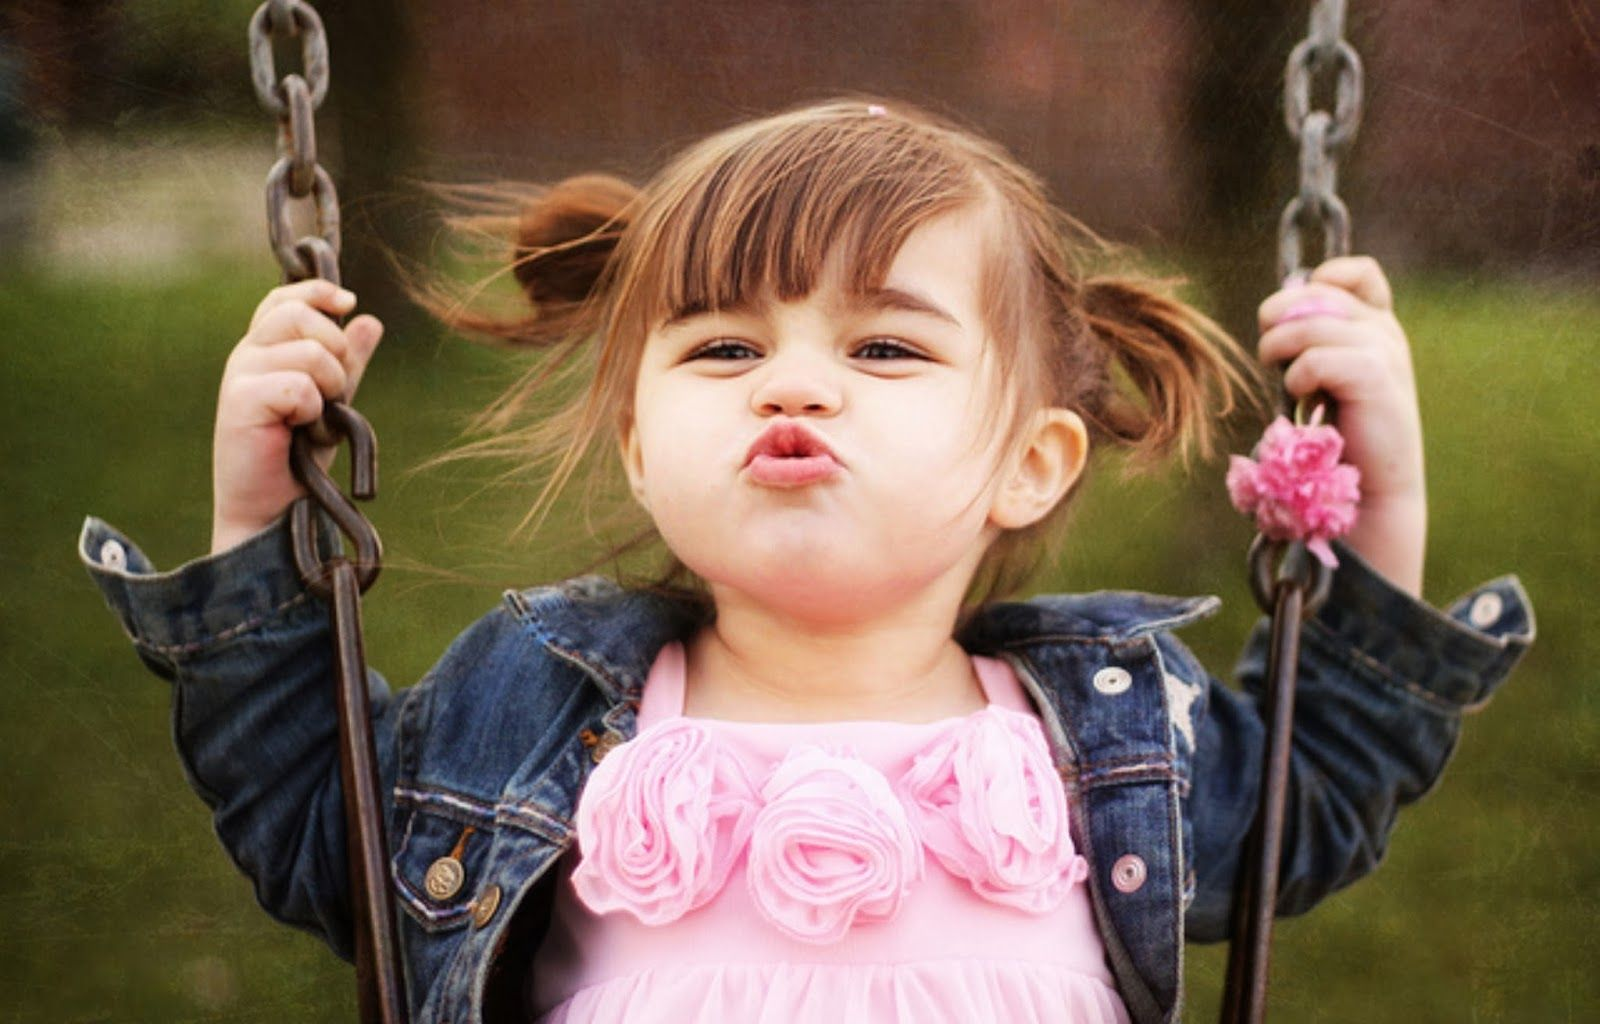 Hd Baby Wallpaper Baby Girl Wallpaper Baby Wallpaper Funny Baby Pictures